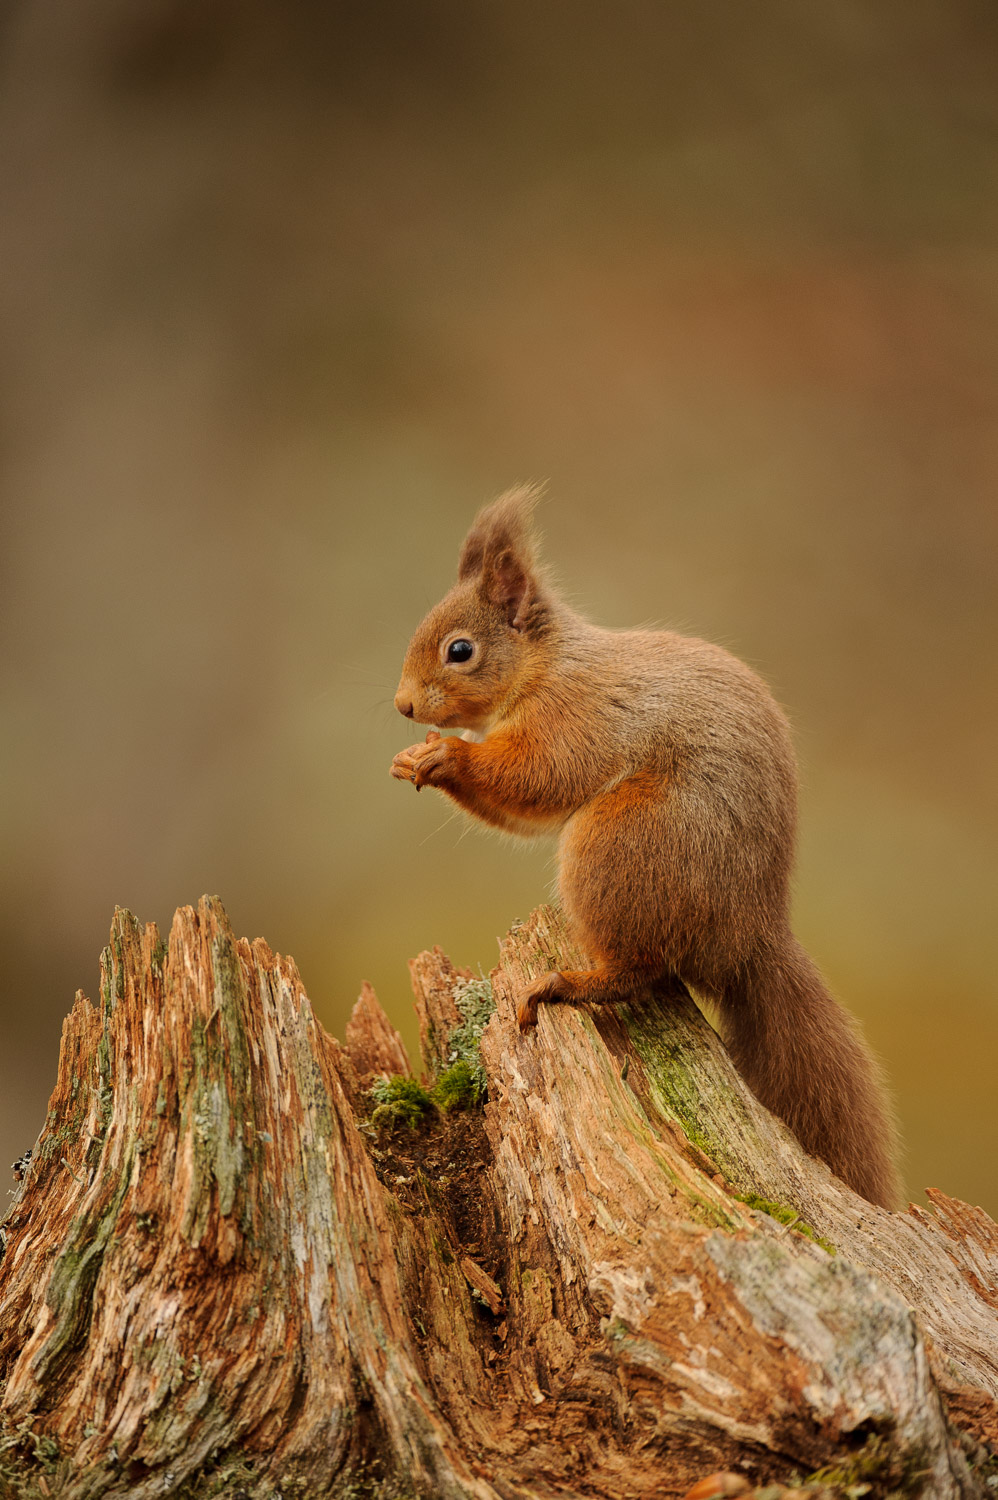 Red Squirrel on a Dead Tree Stump